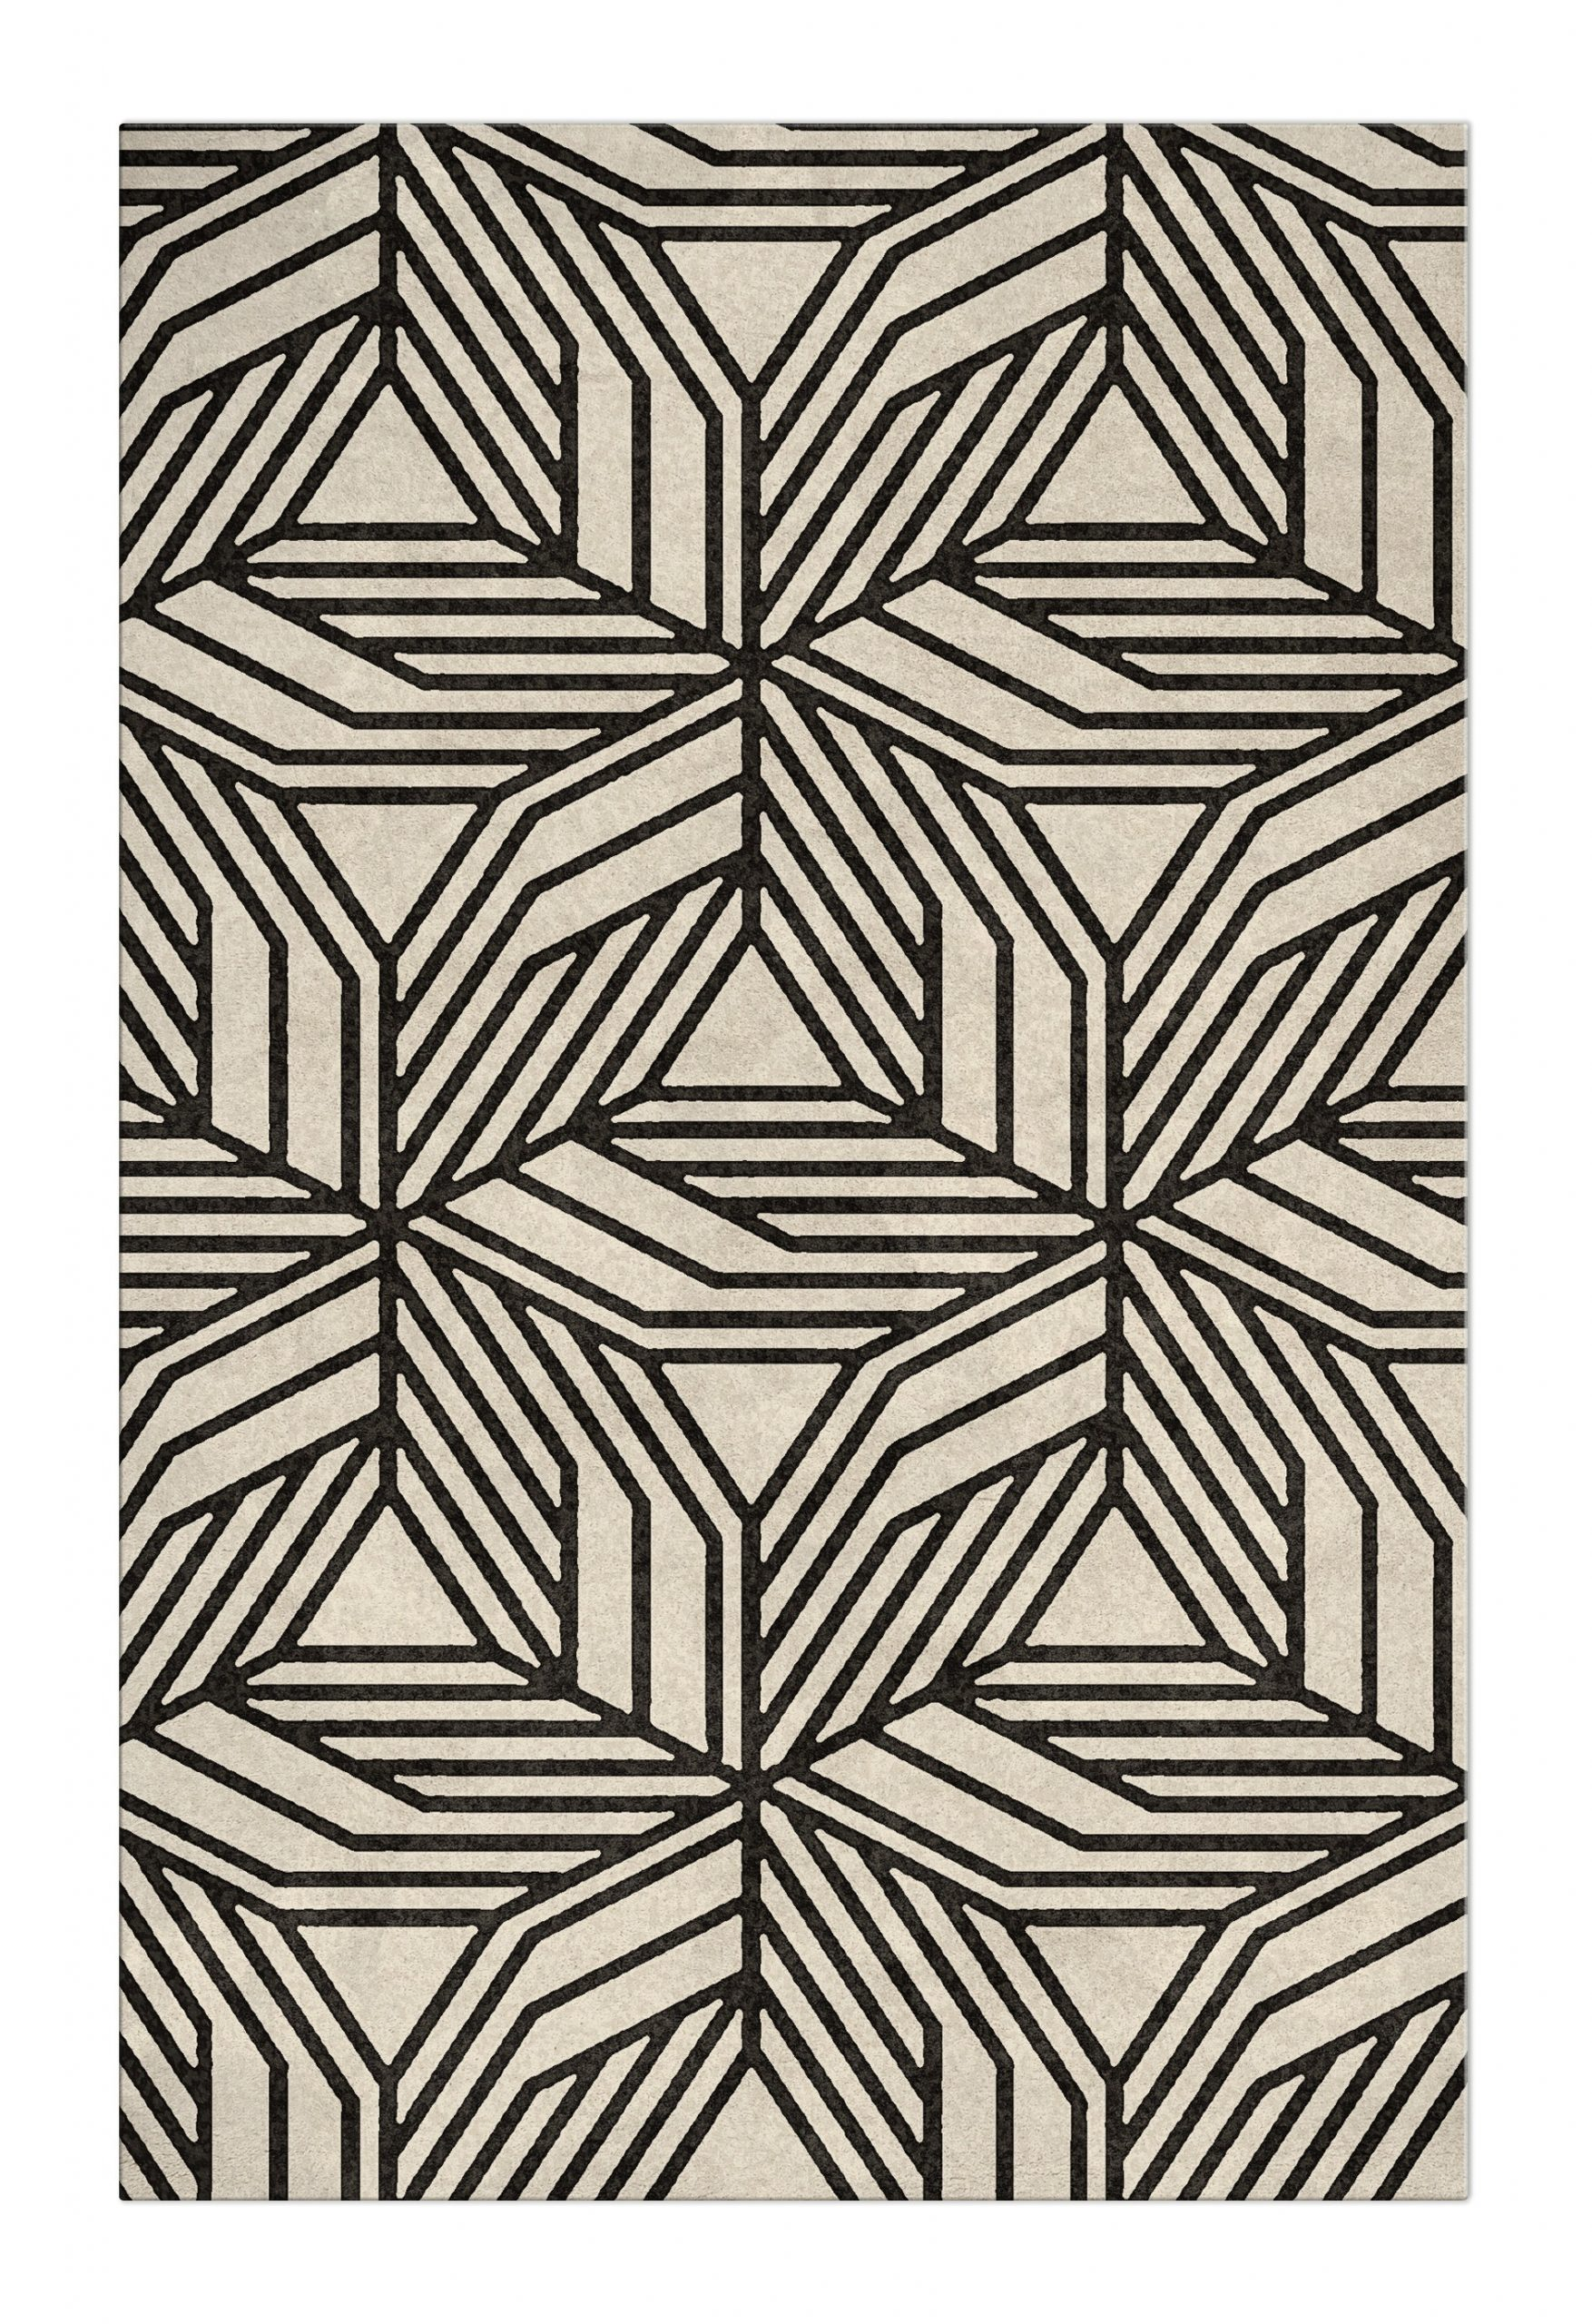 The Trendiest Rugs For 2020 rug trends The Trendiest Rugs For 2020 11 scaled